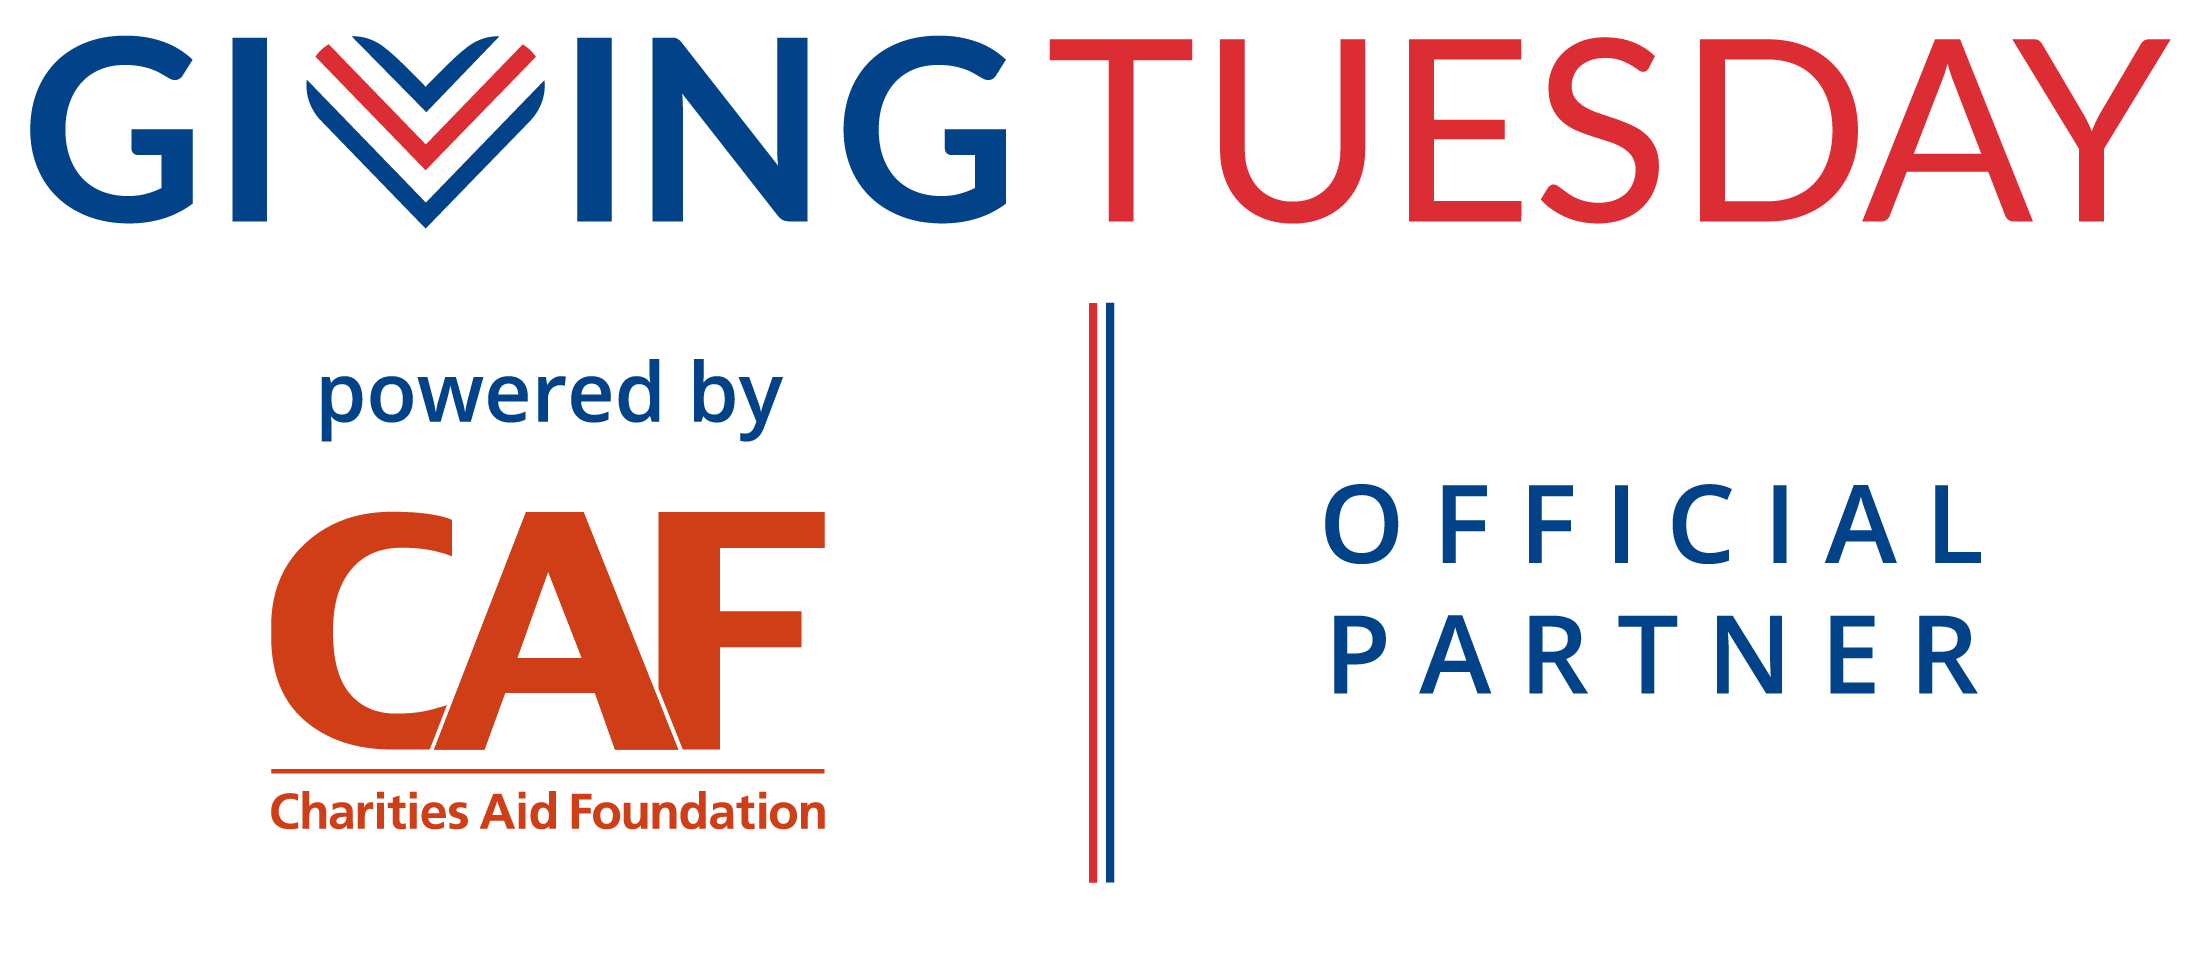 Giving Tuesday Official Partner Logo_Powered by CAF